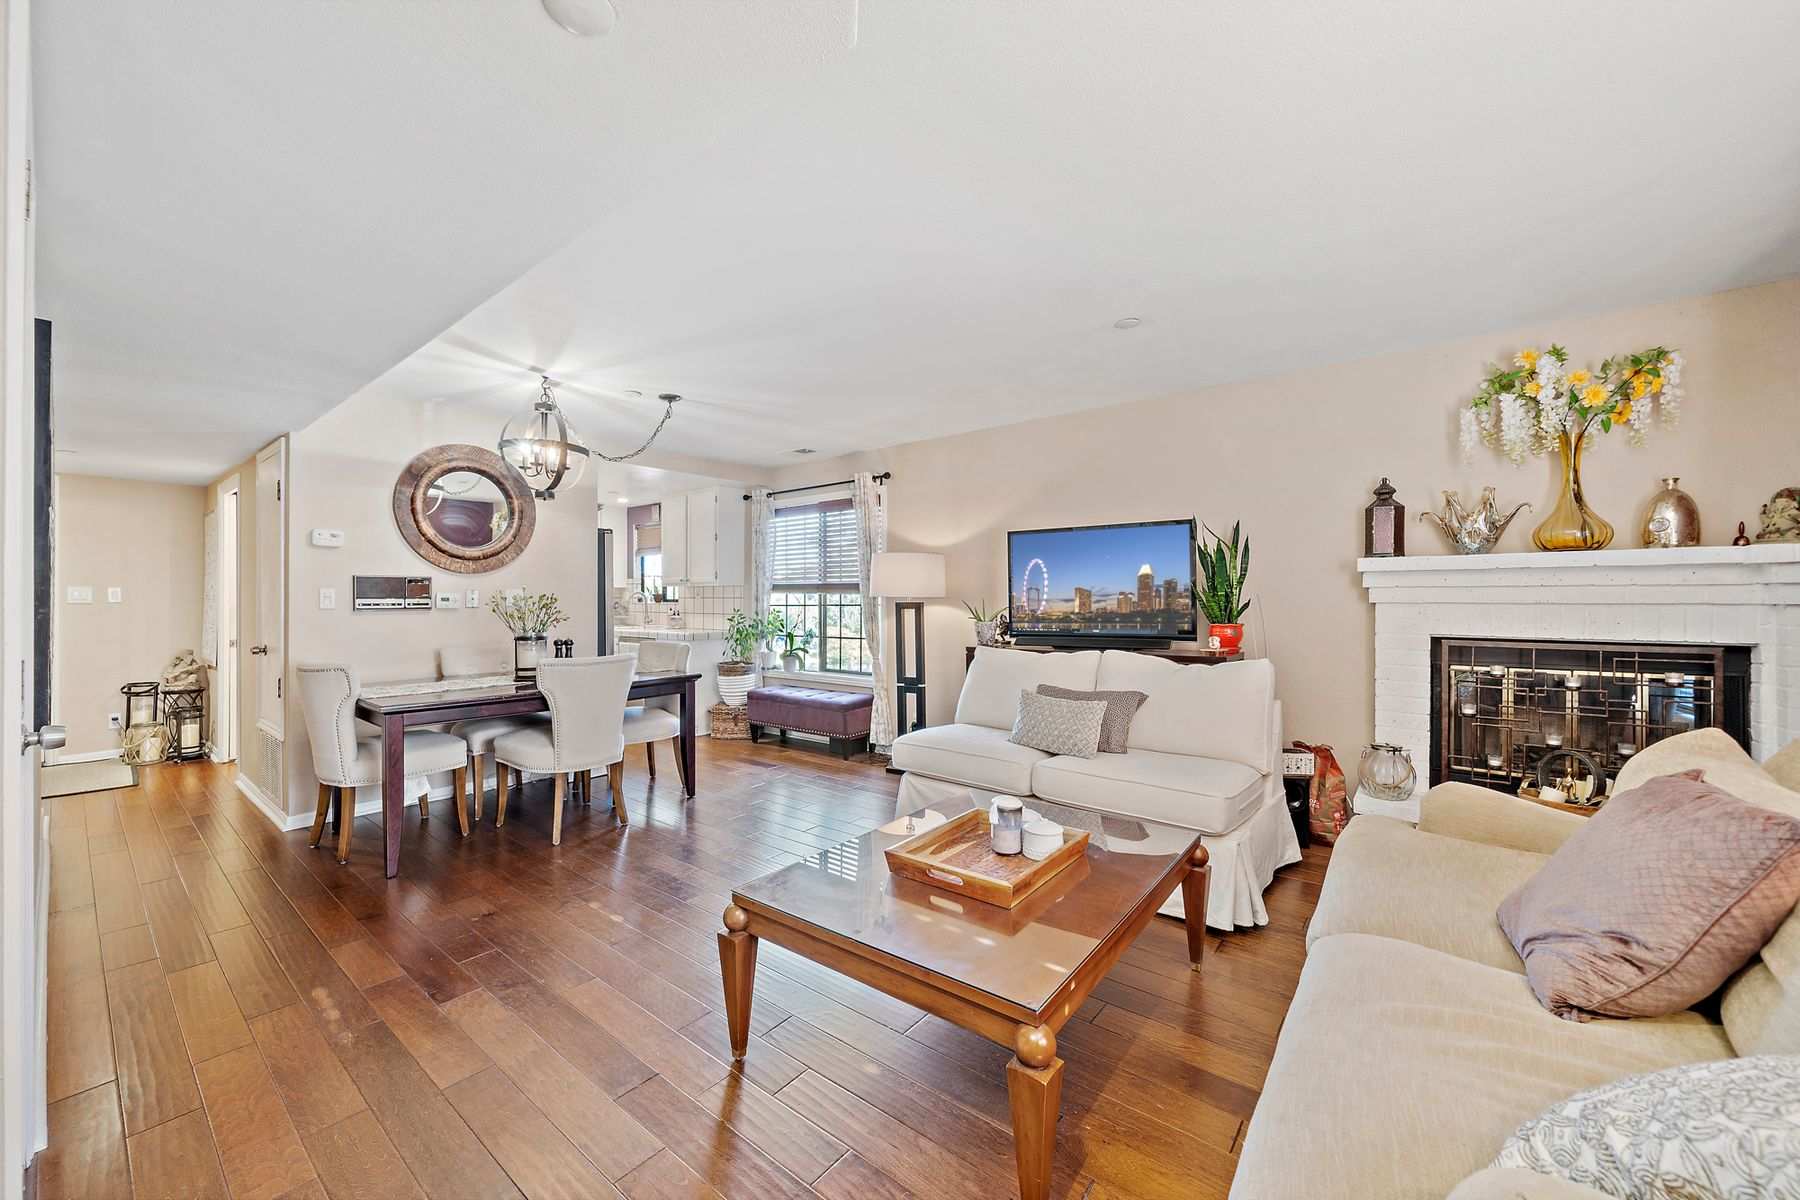 Condominiums for Sale at Walk to Downtown From This Large Condo 1432 San Carlos Ave Apt 3 San Carlos, California 94070 United States